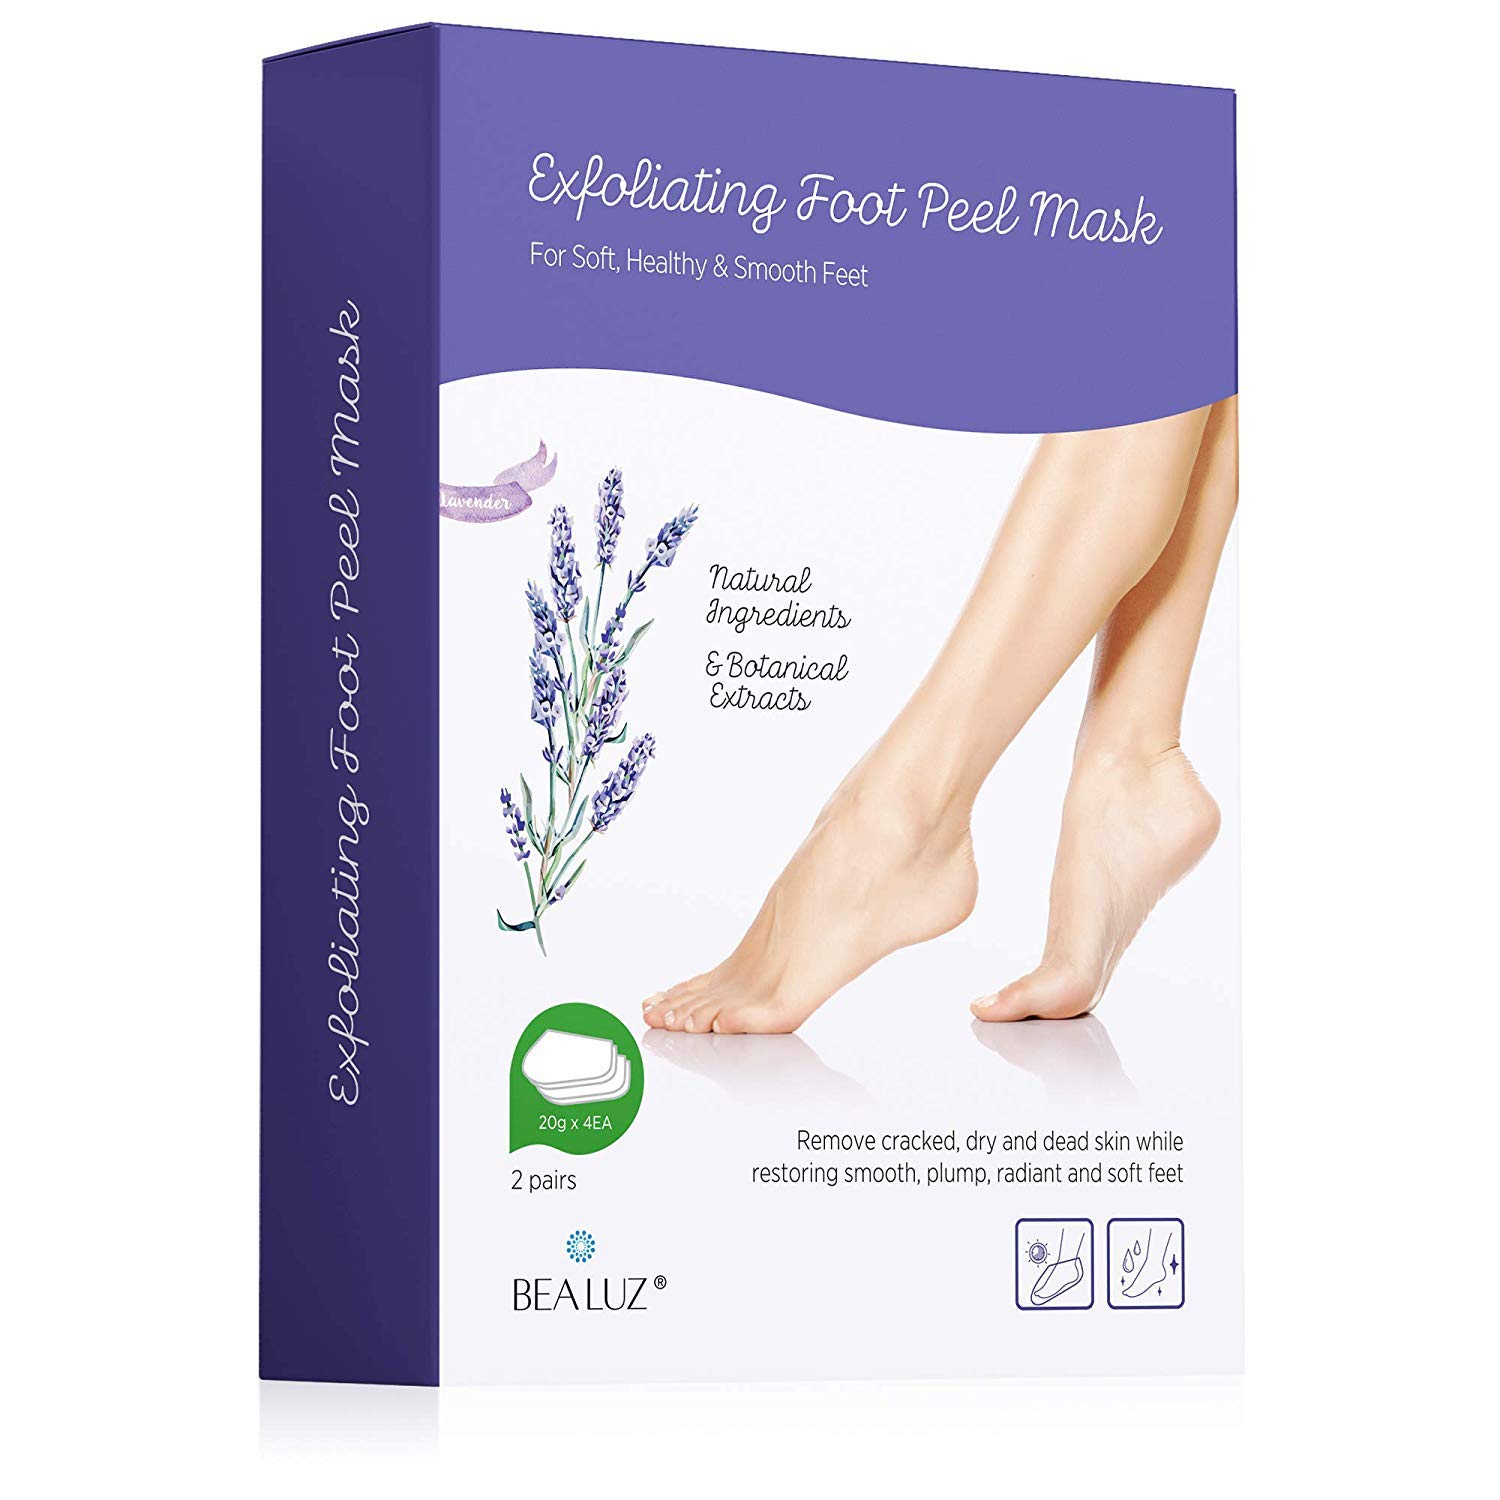 2 Pairs Foot Peel Mask Exfoliant for Soft Feet in 1-2 Weeks, Exfoliating Booties for Peeling Off Calluses & Dead Skin, For Men & Women Lavender by Bea Luz by Bealuz